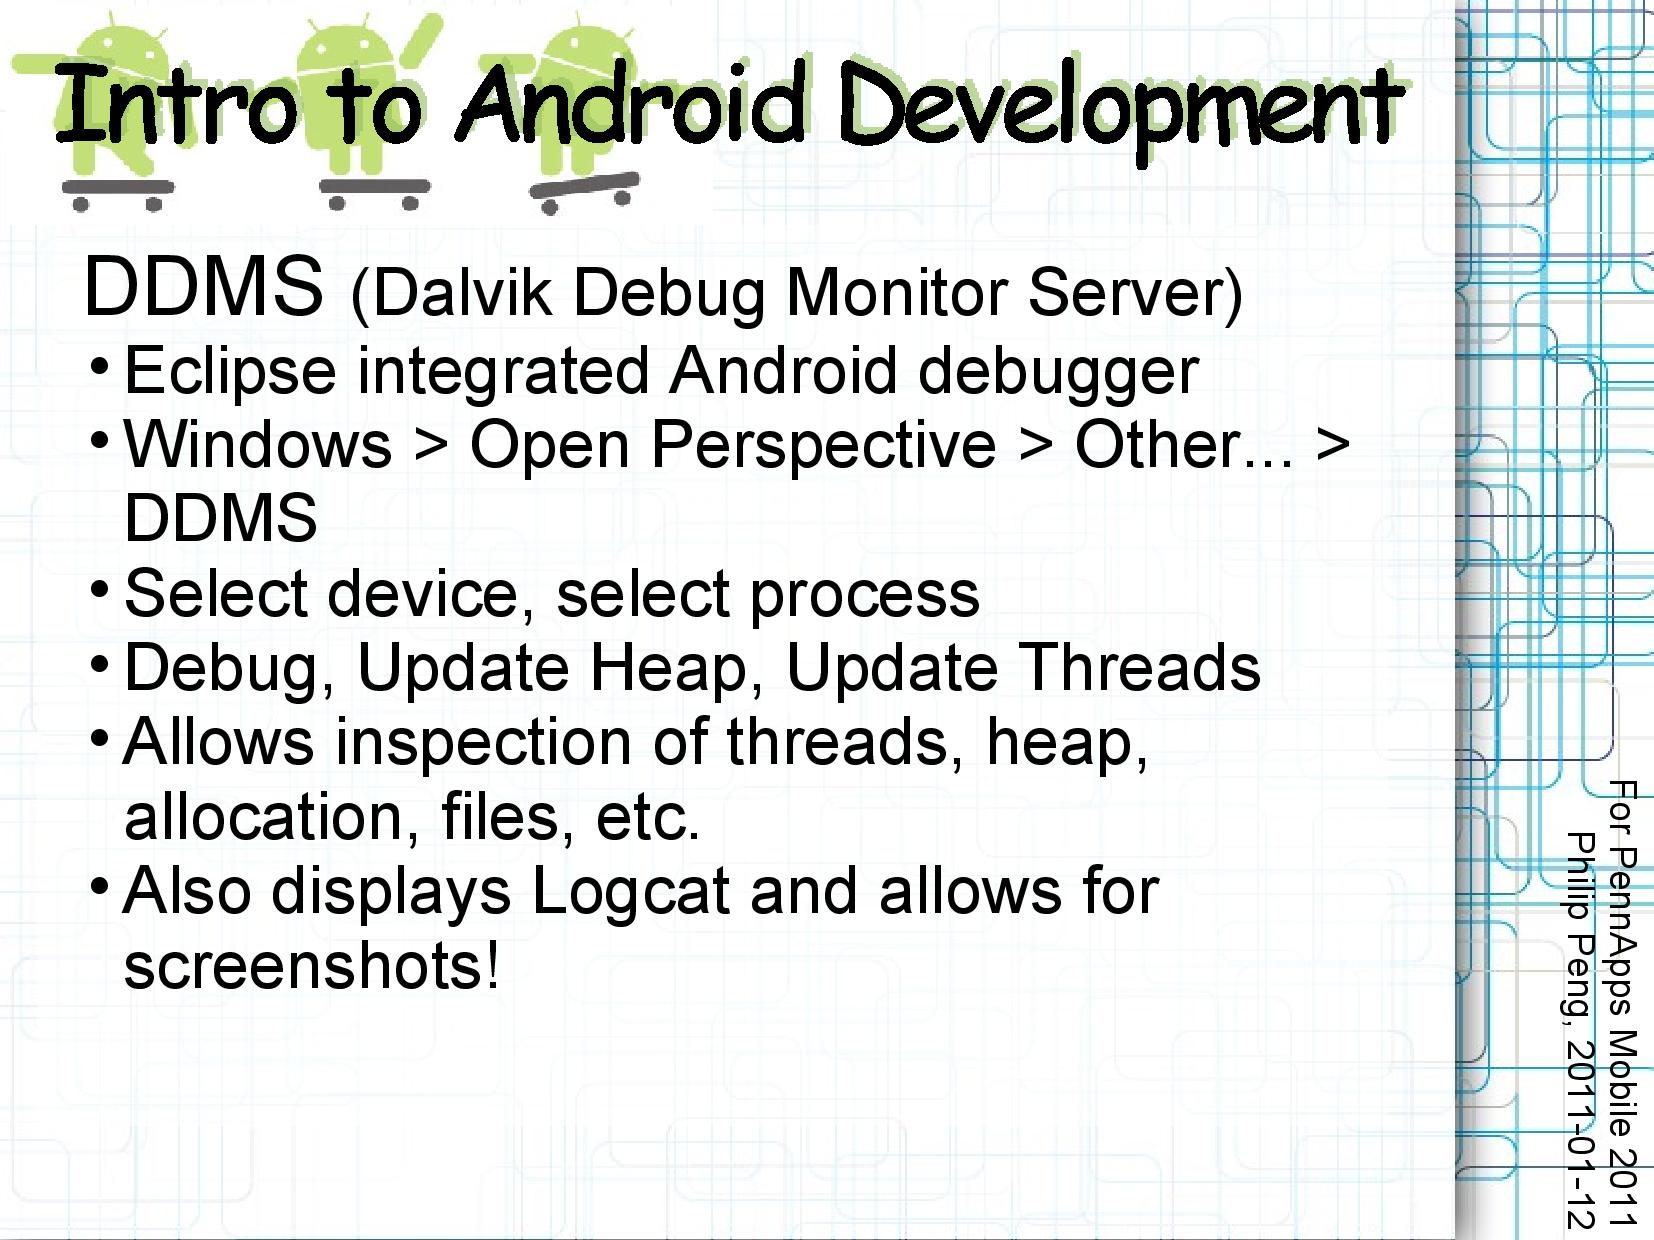 2011-01-12 Intro to Android Development 026